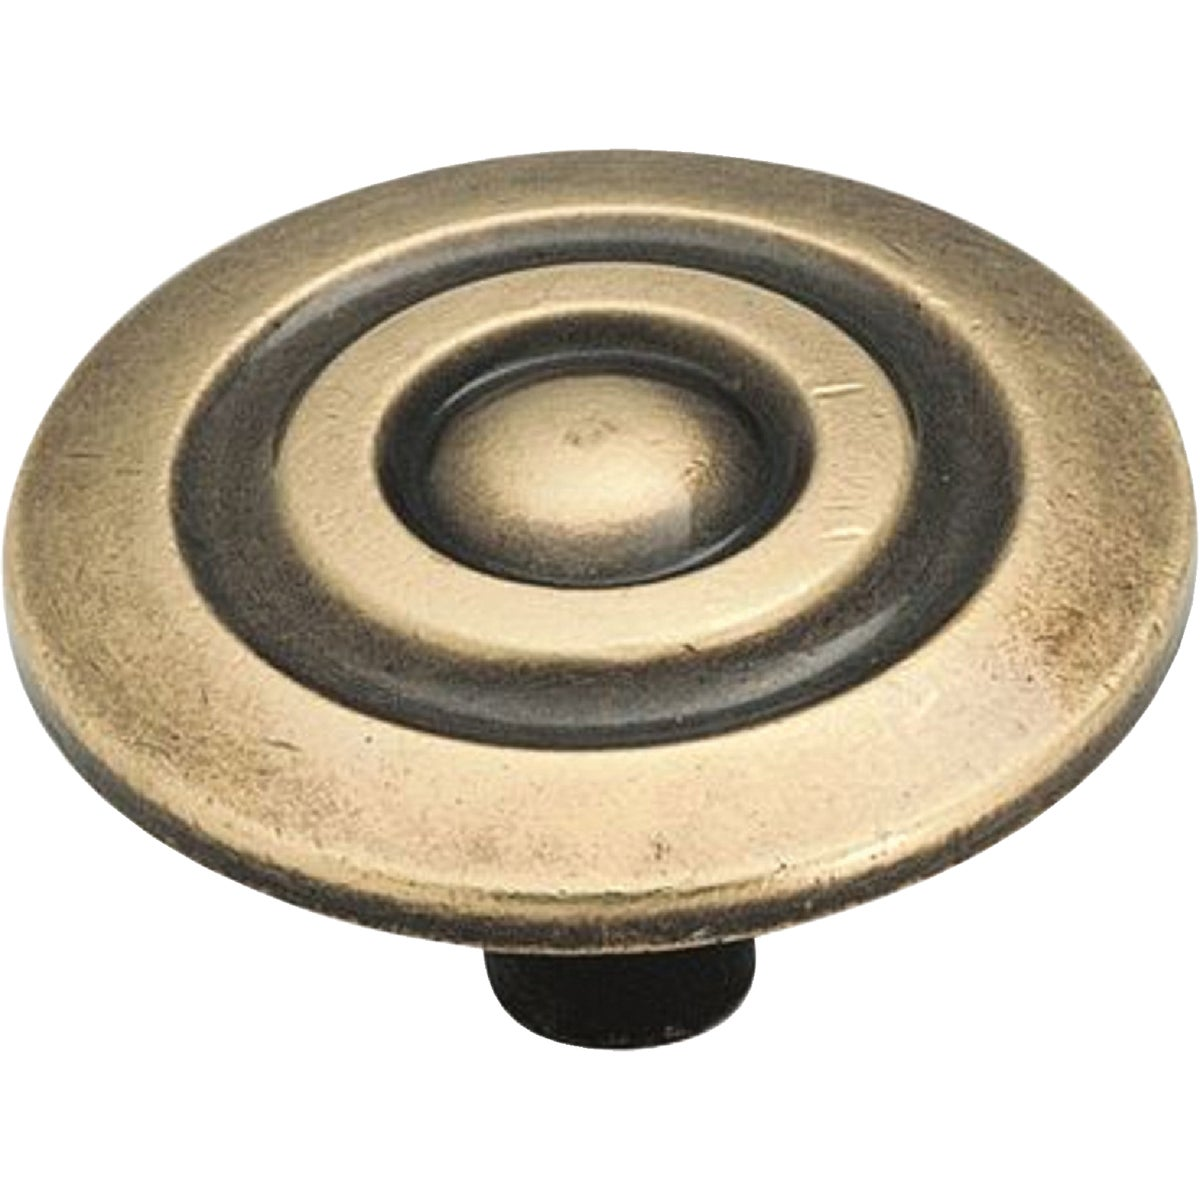 "1-1/2"" AE COLONNADE KNOB - BP594-AE by Amerock Corporation"